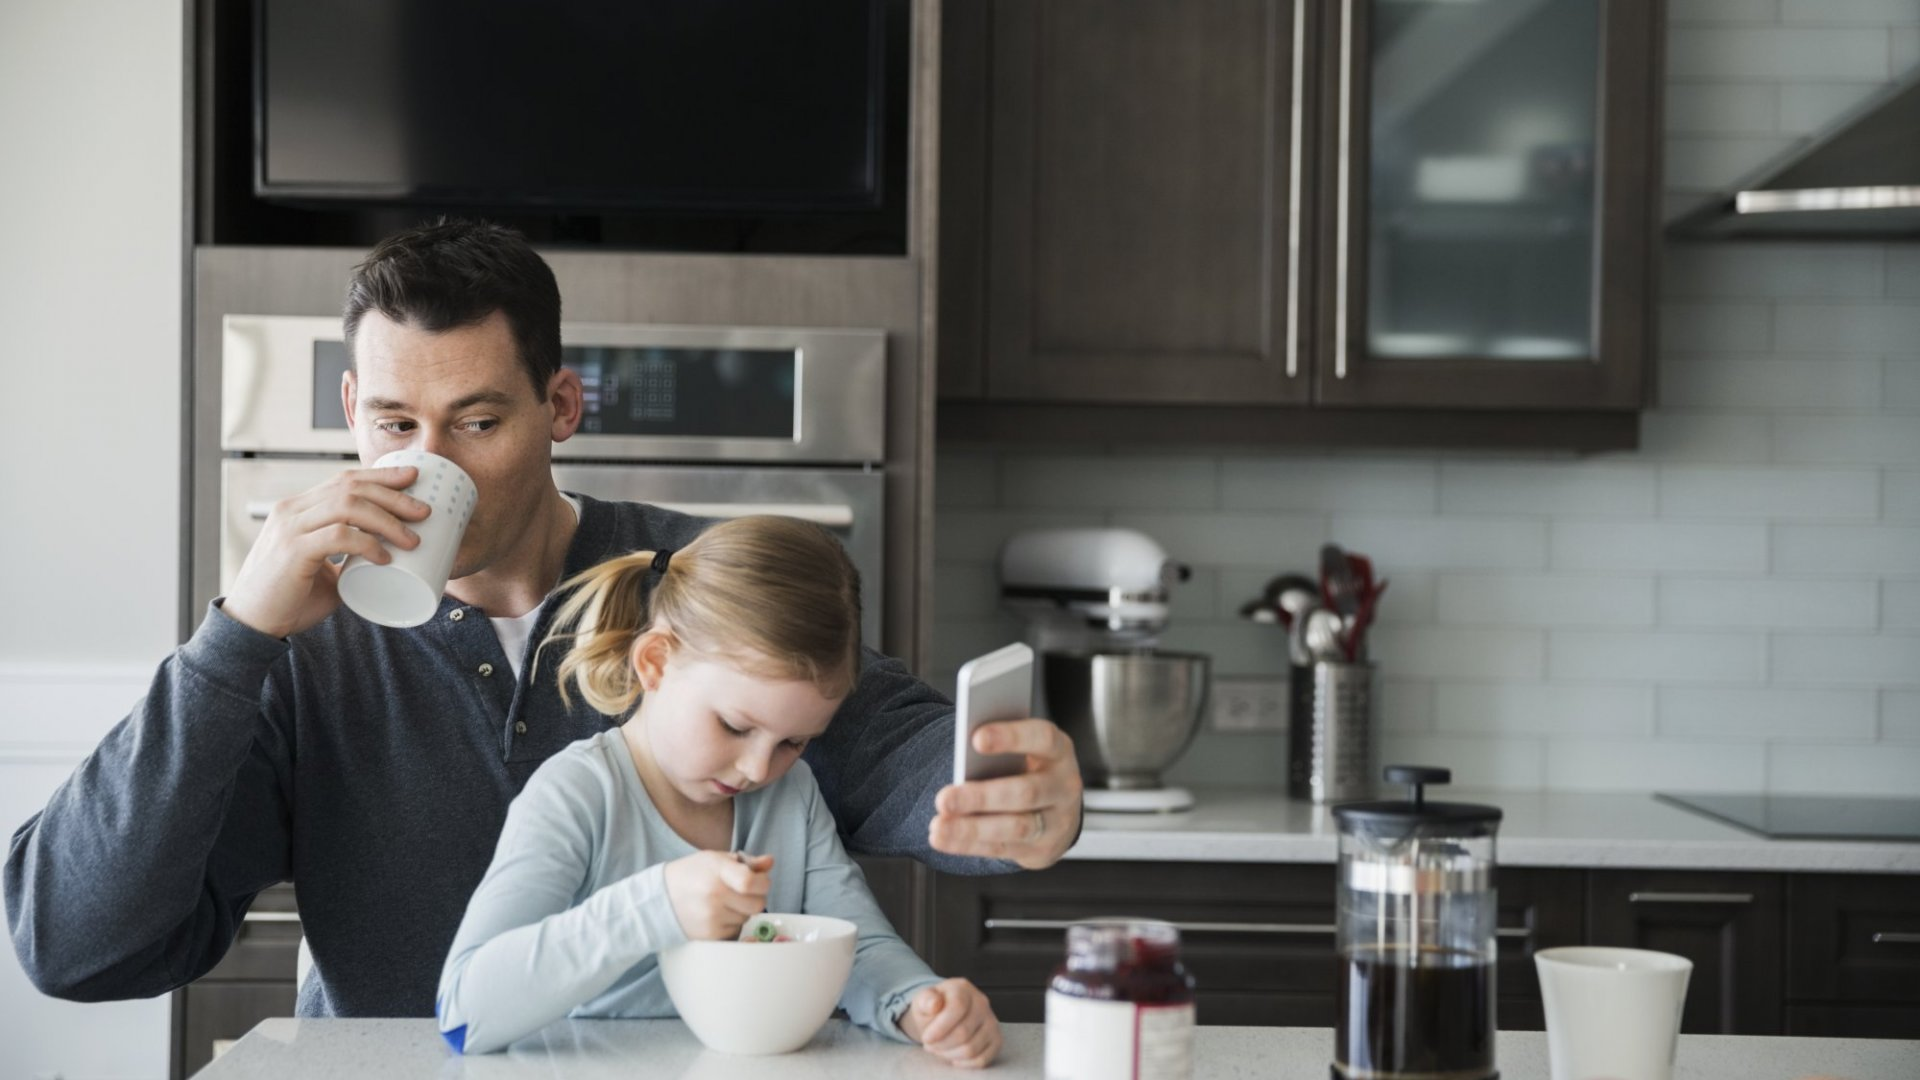 Want to Reduce Parenting Stress? Science Shows This Is a Likely Cause